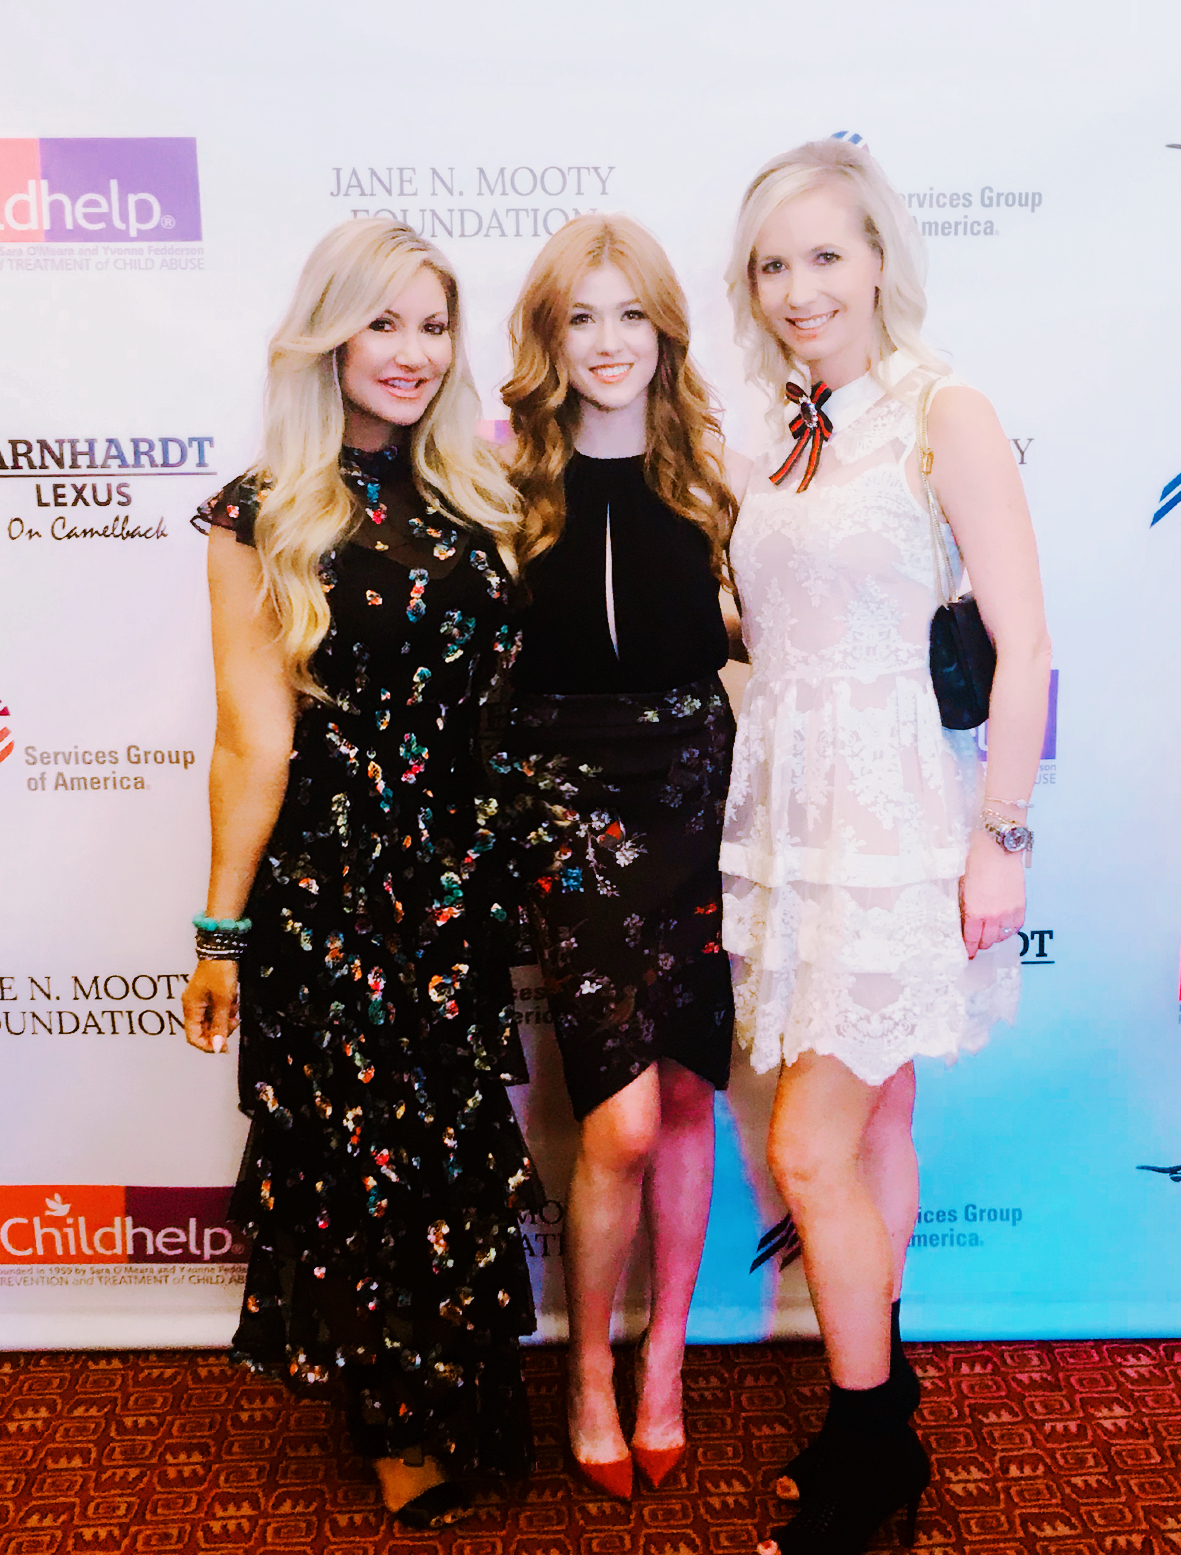 Carey Pena, Suzanne Bissett and Disney's Bella Thorne at Childhelp event